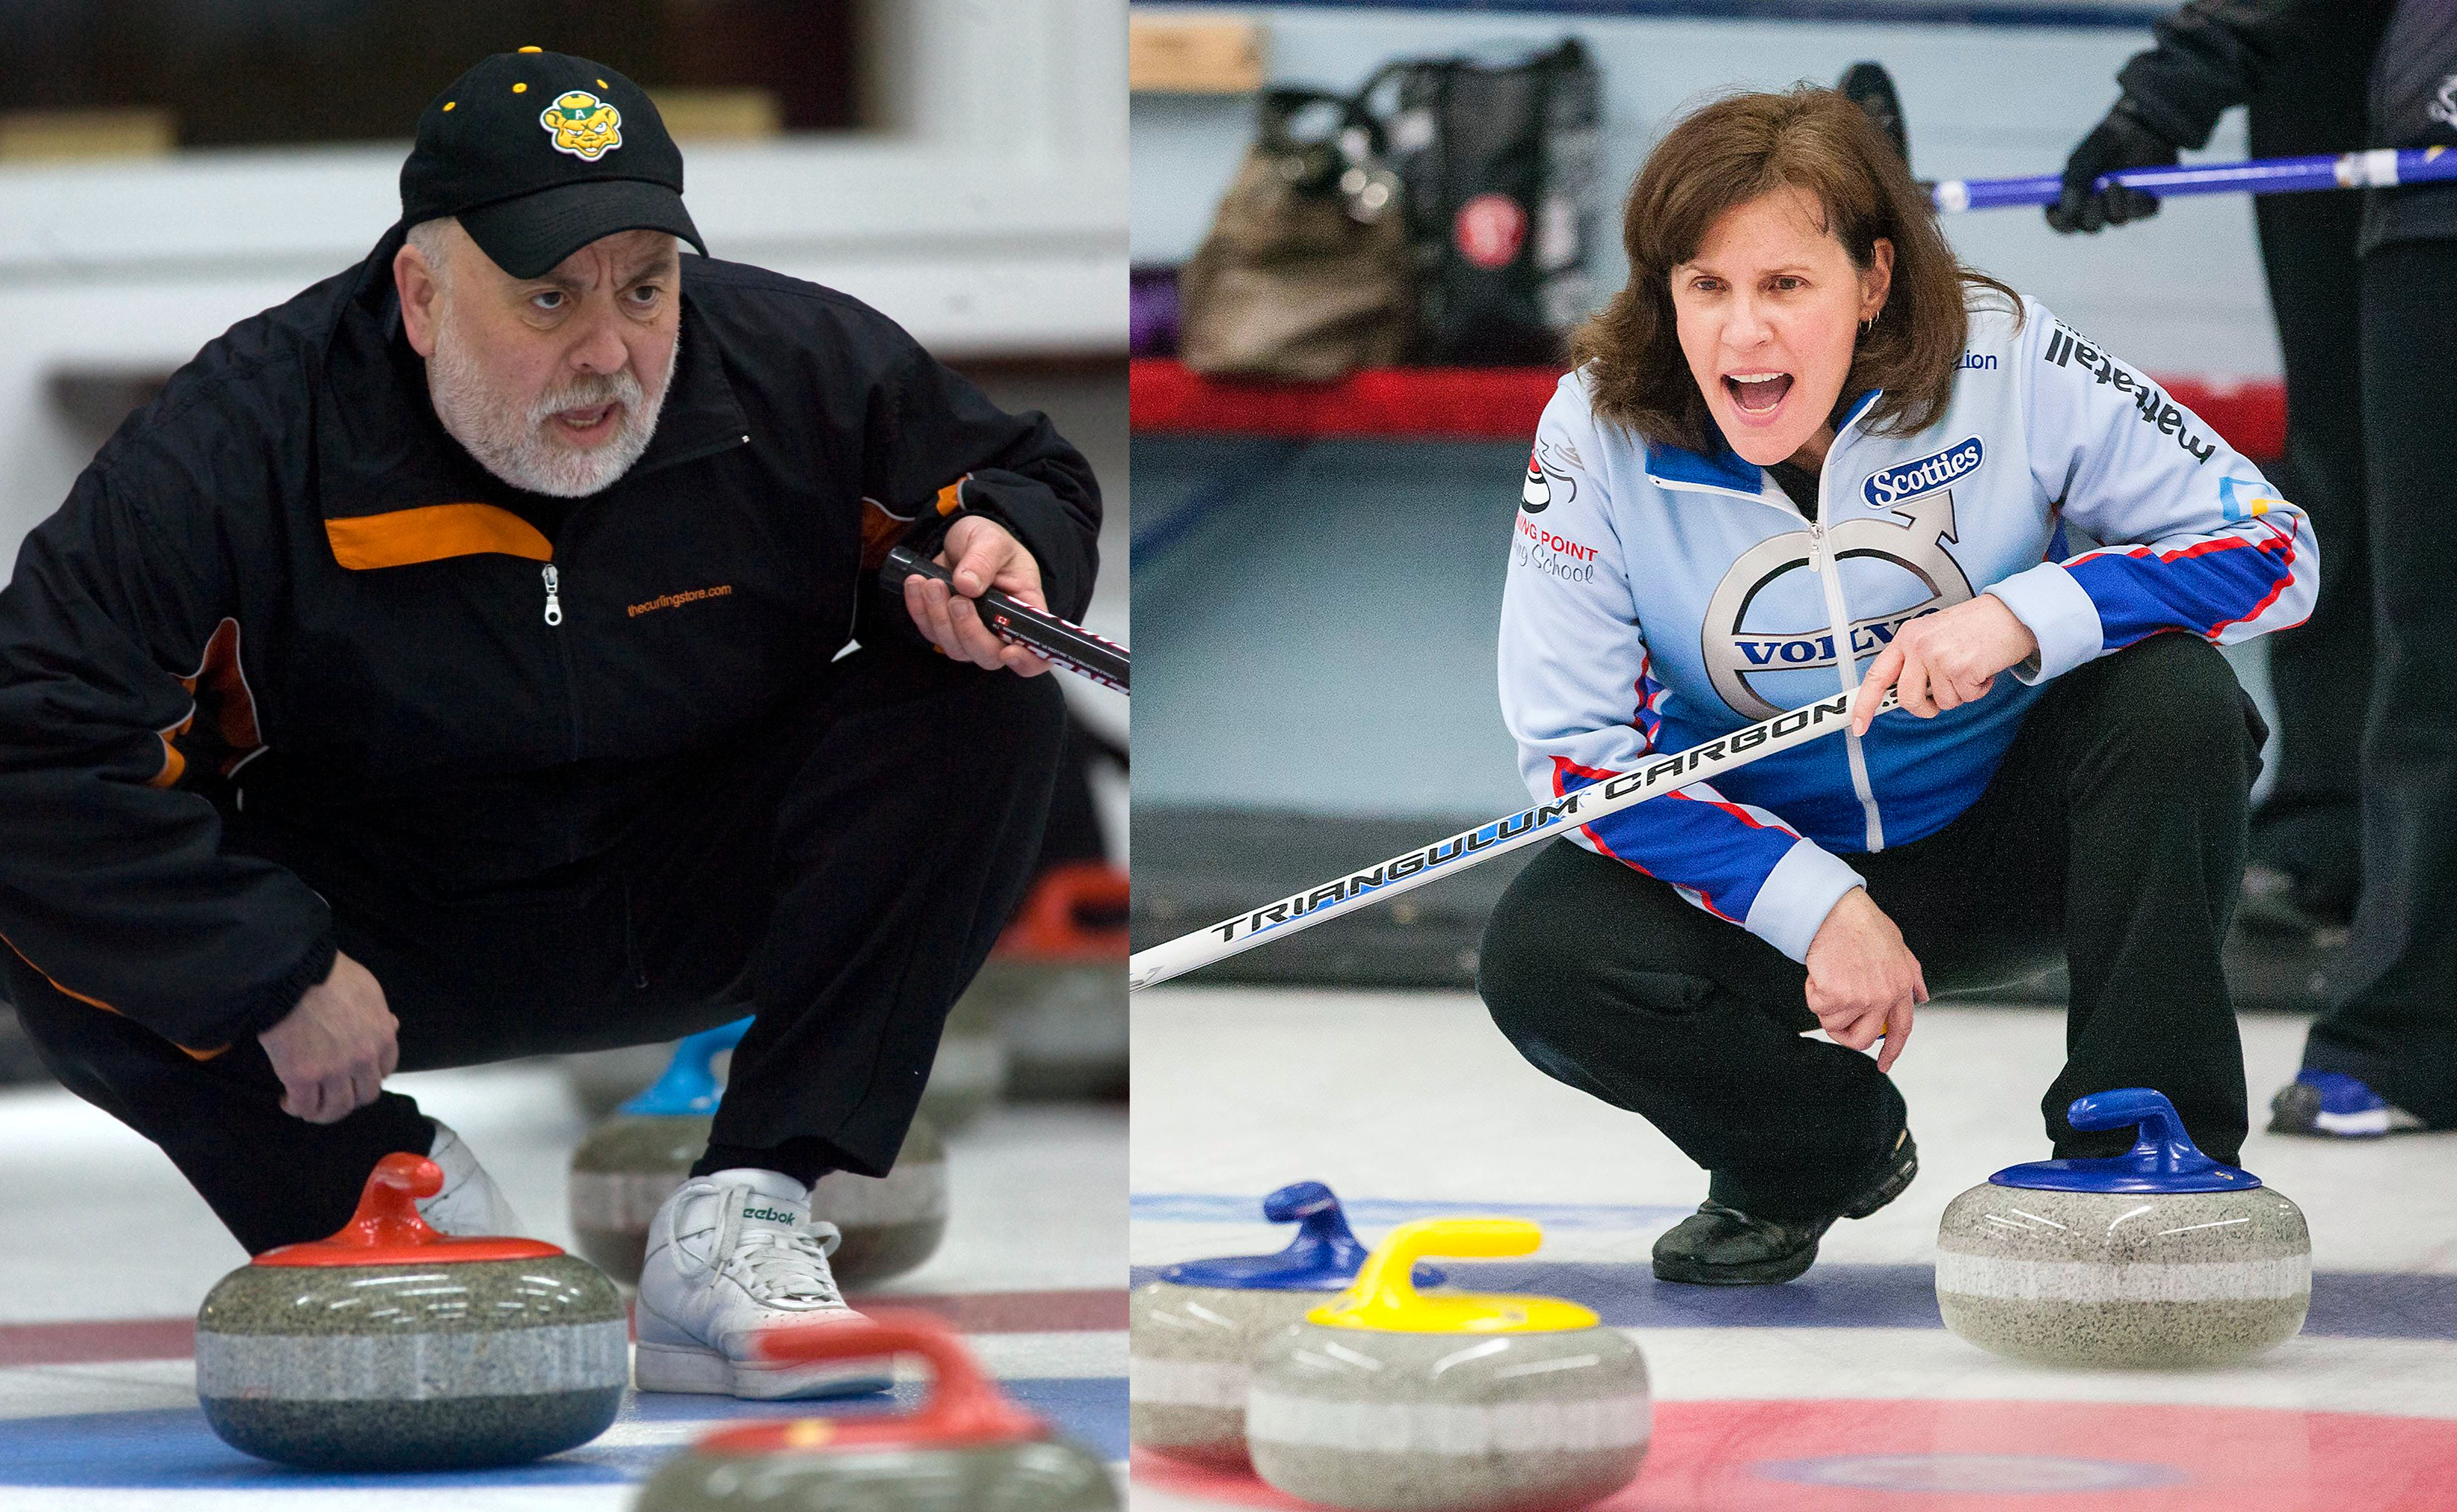 Brian Rafuse, left, and Mary Mattatall were recently inducted into the Nova Scotia Curling Hall of Fame. Both Rafuse and Mattatall are using their vast curling knowledge to help guide the next generation of athletes.